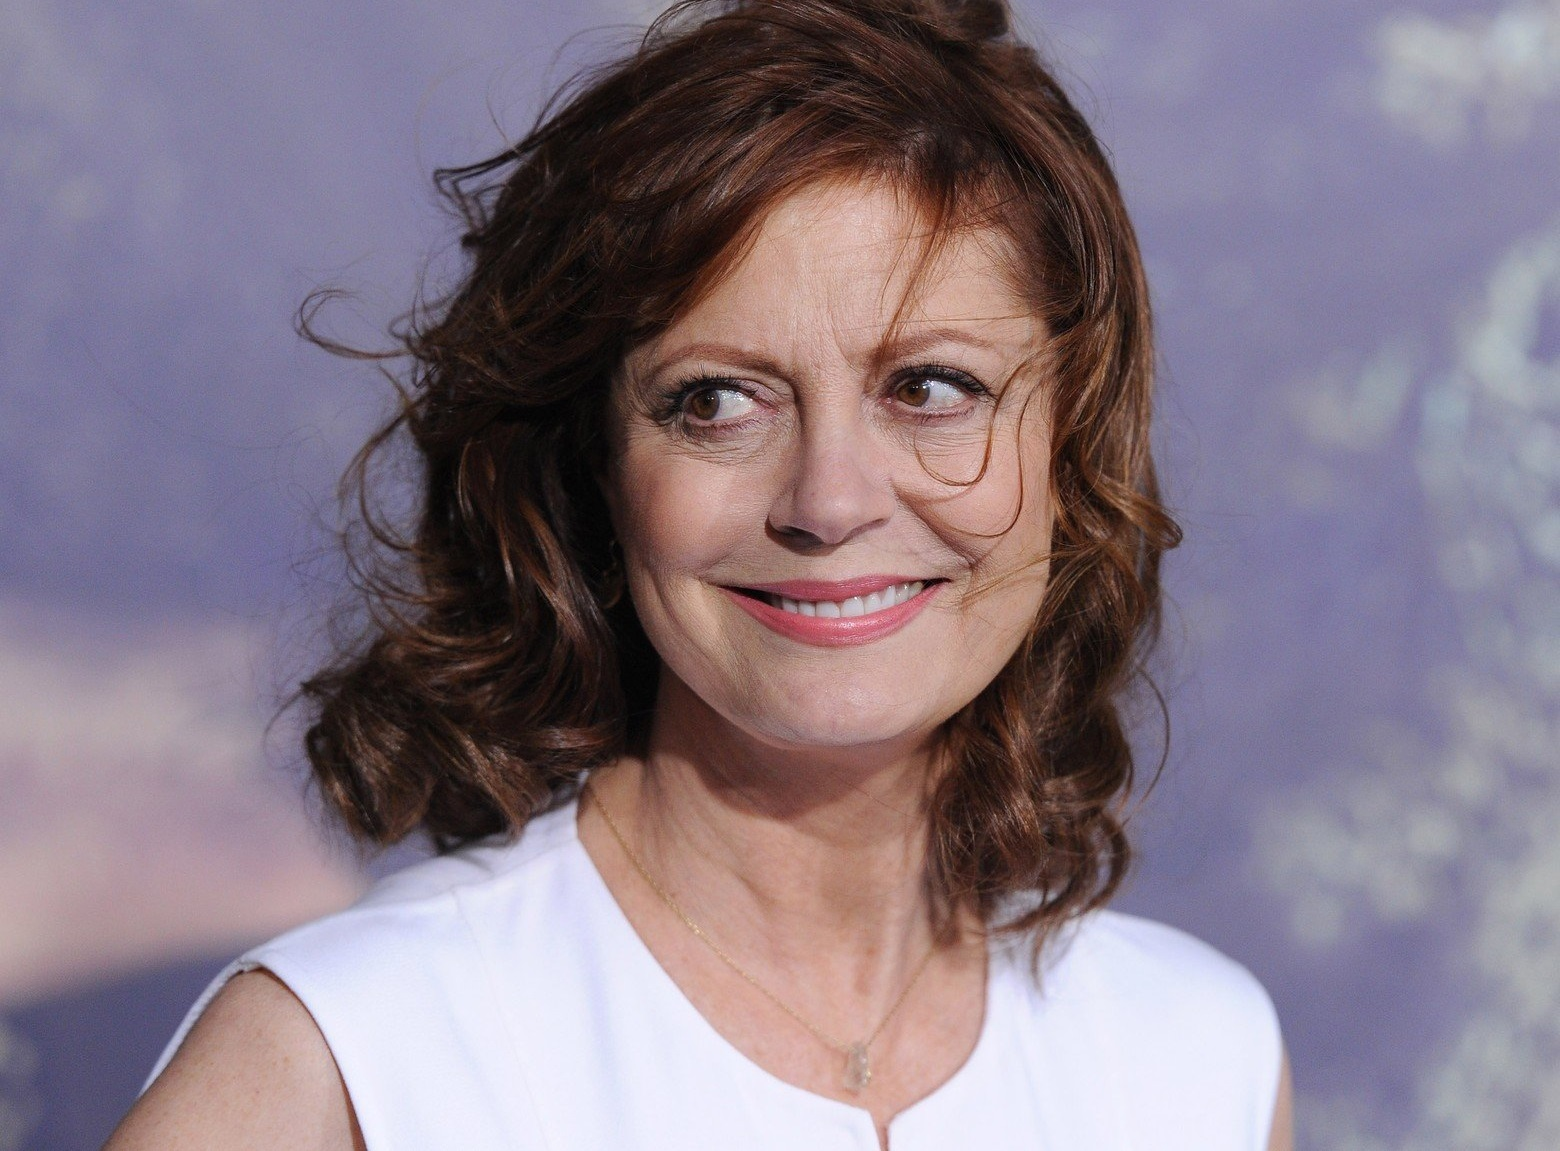 "©AXELLE/BAUER-GRIFFIN.COM Los Angeles Premiere of ""Cloud Atlas"". Grauman's Chinese, Hollywood, CA. October 24, 2012. Job: 121024A1. www.bauergriffin.com www.bauergriffinonline.com Pictured: Susan Sarandon."